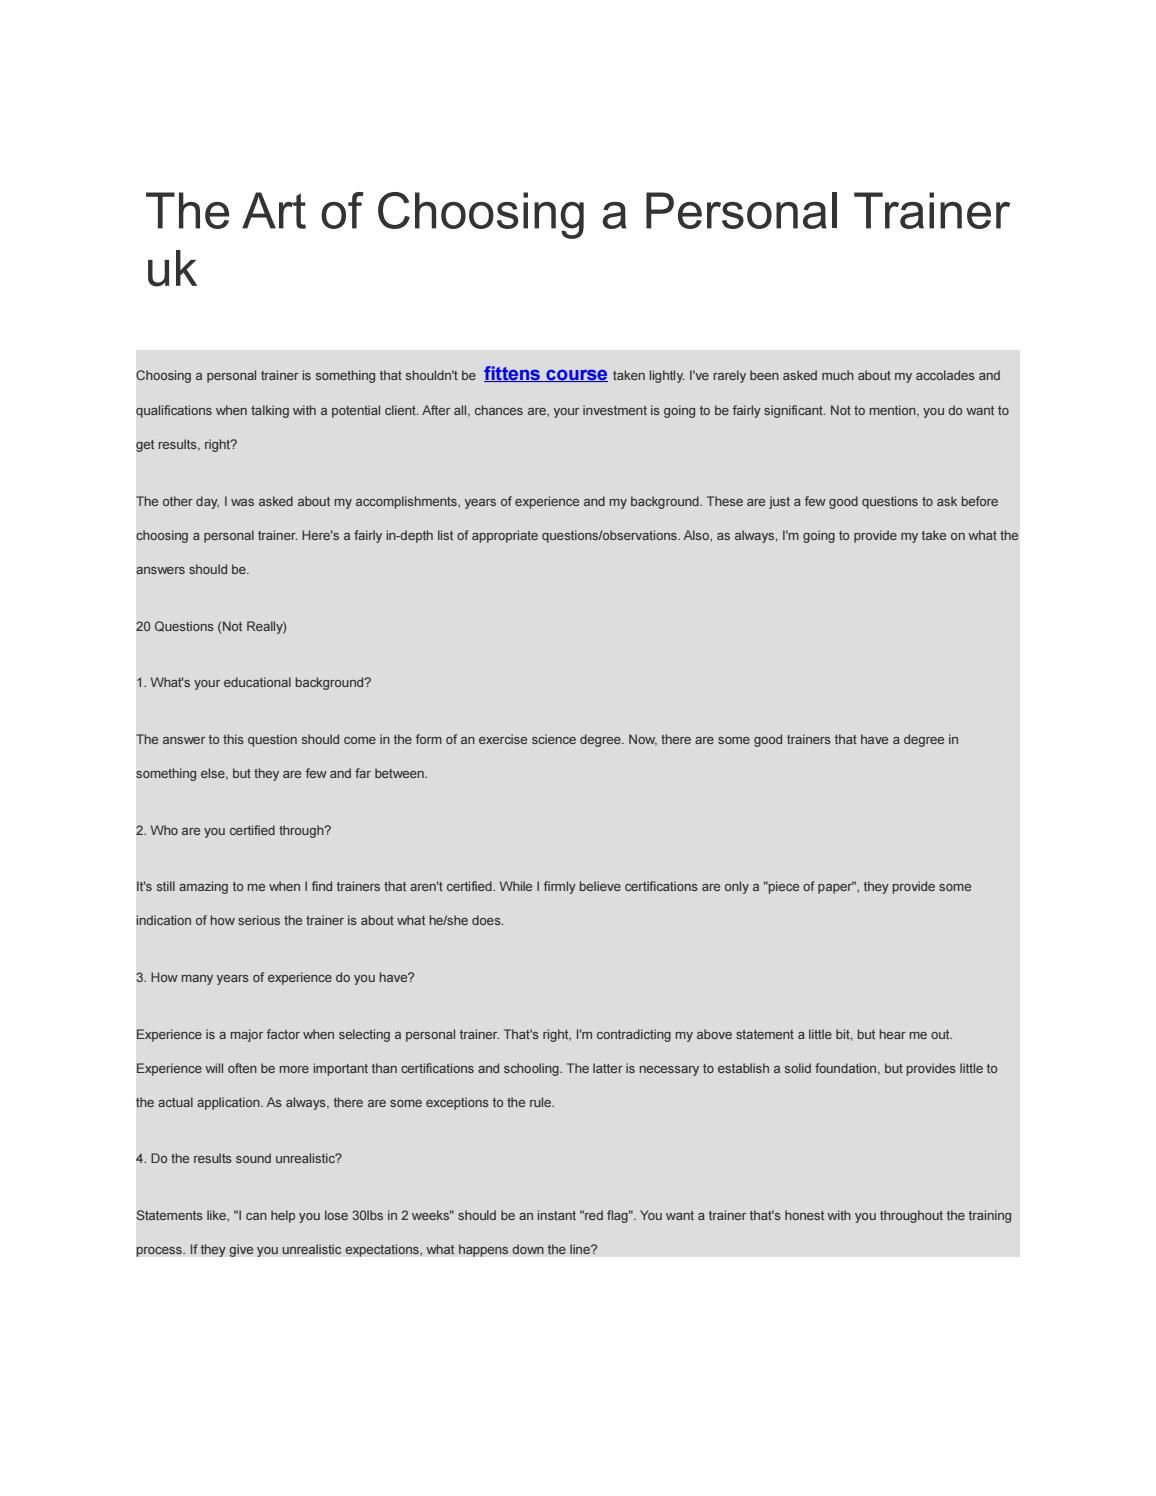 Hire a personal trainer for fitness personal training courses hire a personal trainer for fitness personal training courses personal trainer and trainers 1betcityfo Choice Image